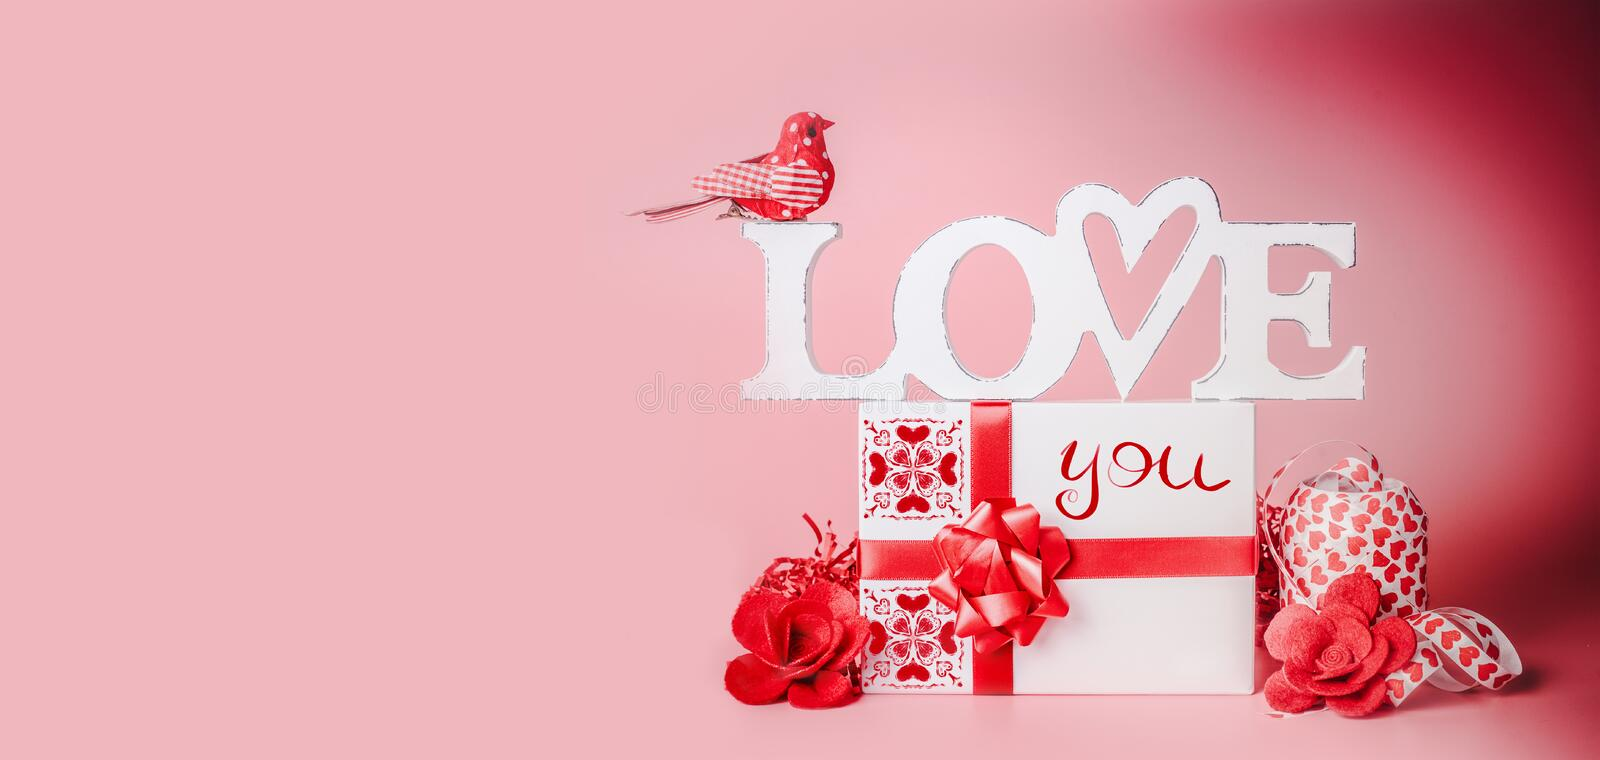 Valentines day background. Romantic composition with Love you message, gift box, red ribbons and hearts. Festive greeting concept royalty free stock photos